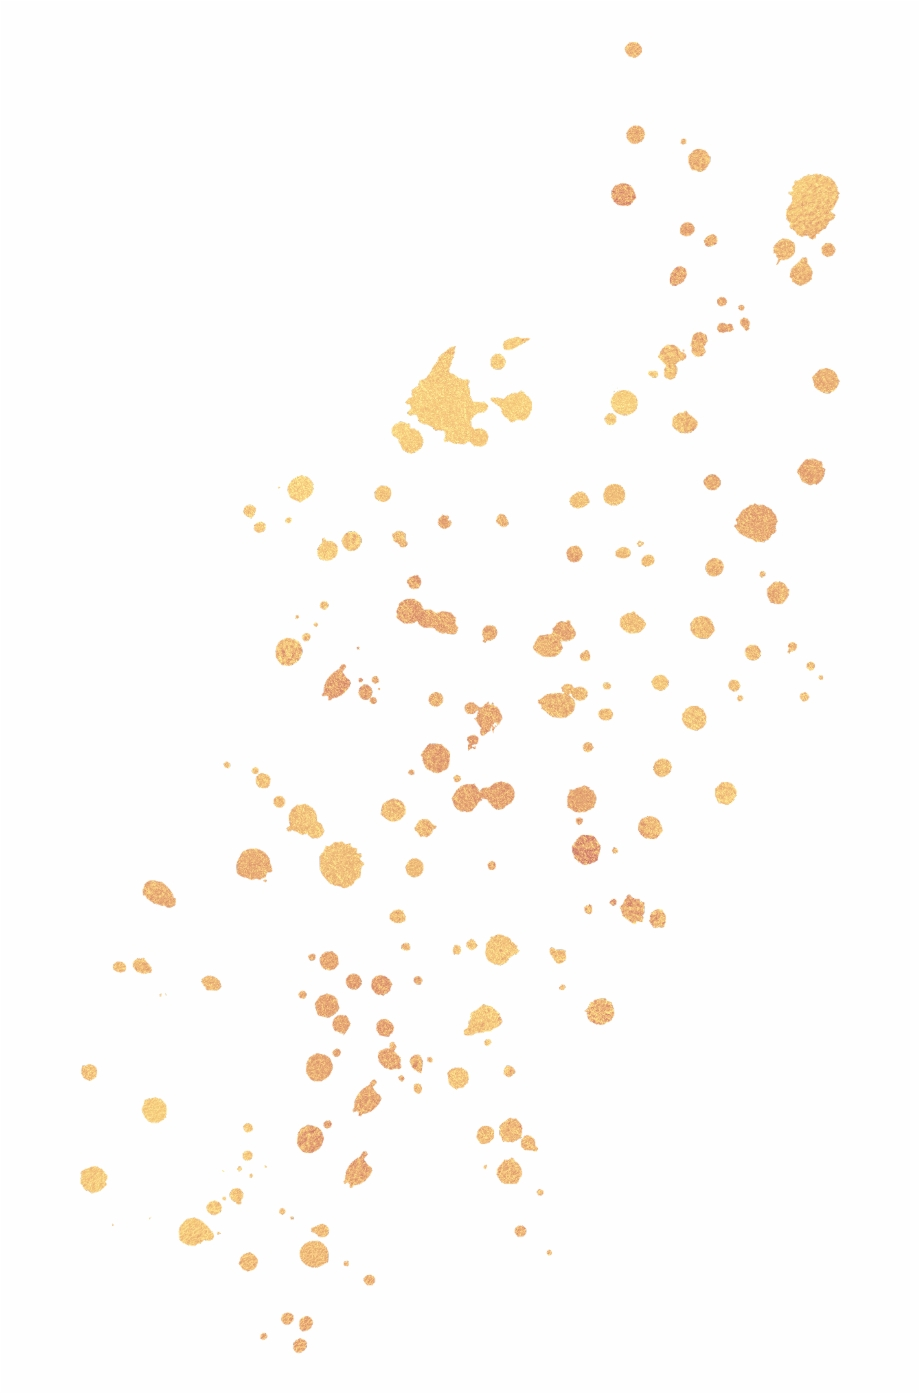 Gold splatter clipart graphic free download gold #splatter #glitter #overlay #ftestickers - Glitter Overlay Free ... graphic free download